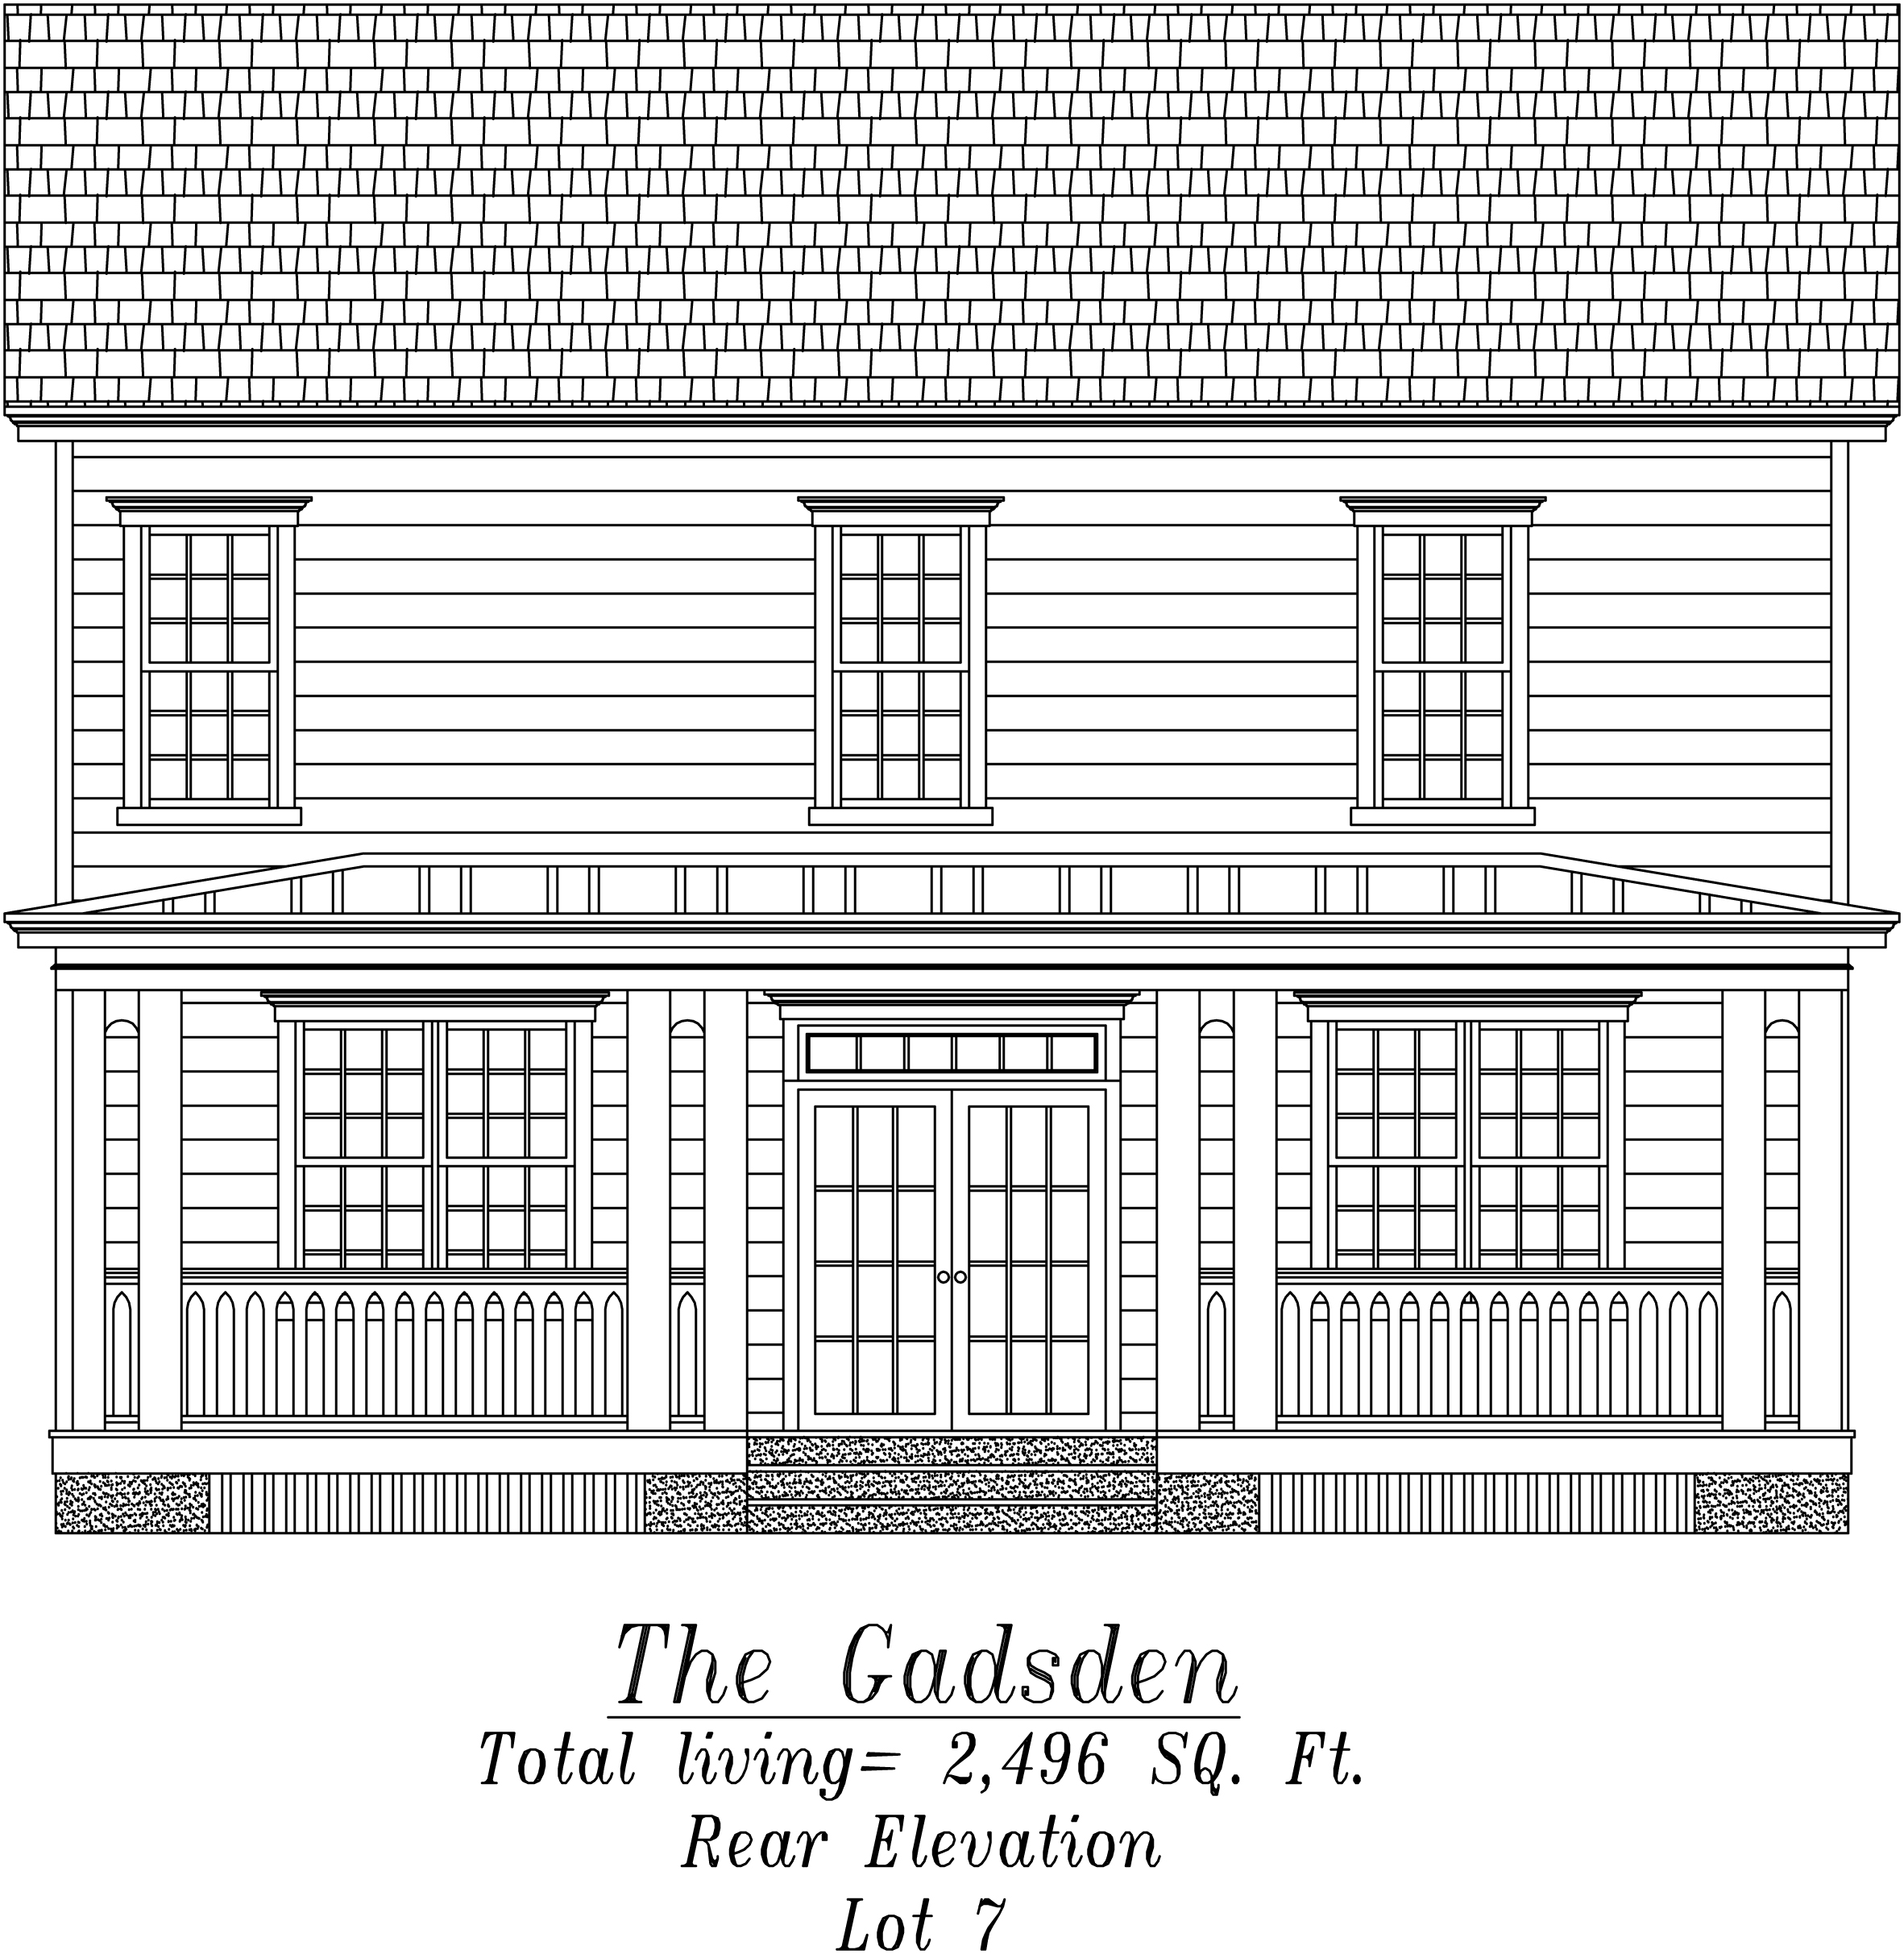 Gadsden Rear Elevation